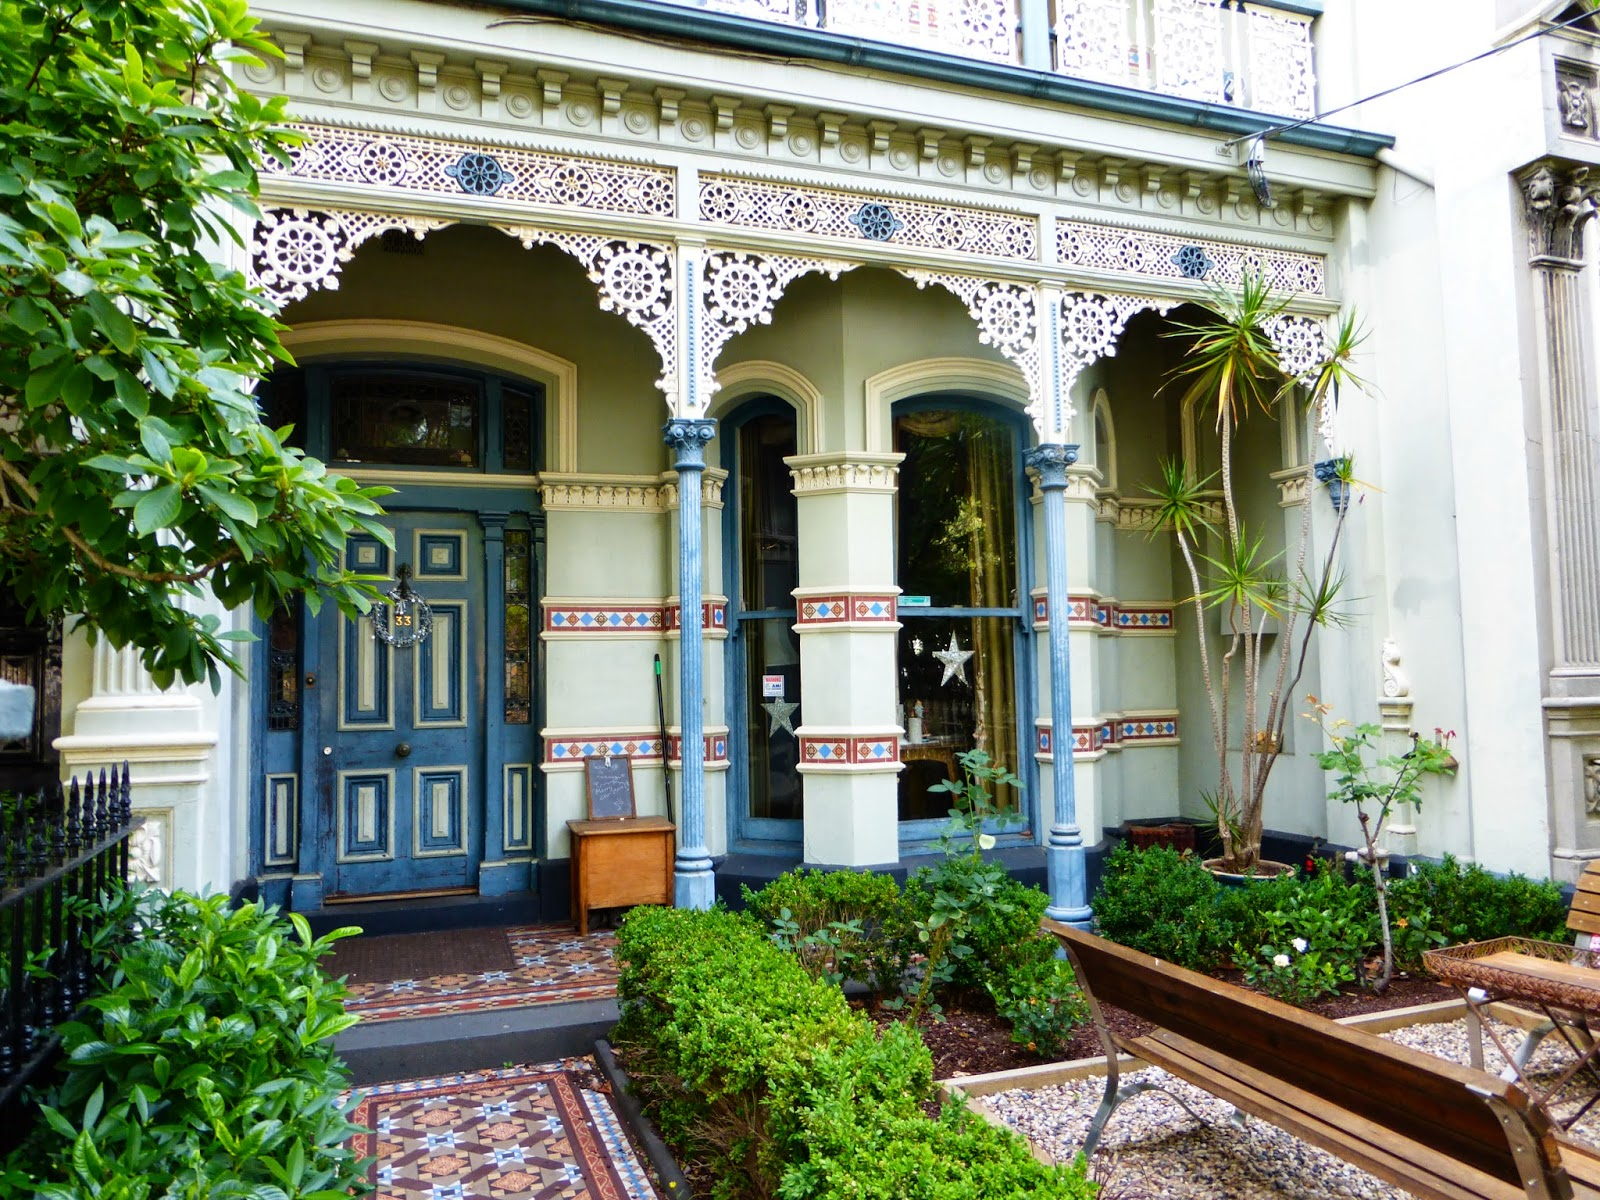 My vintage journeys victorian homes of melbourne australia for Beach house designs melbourne